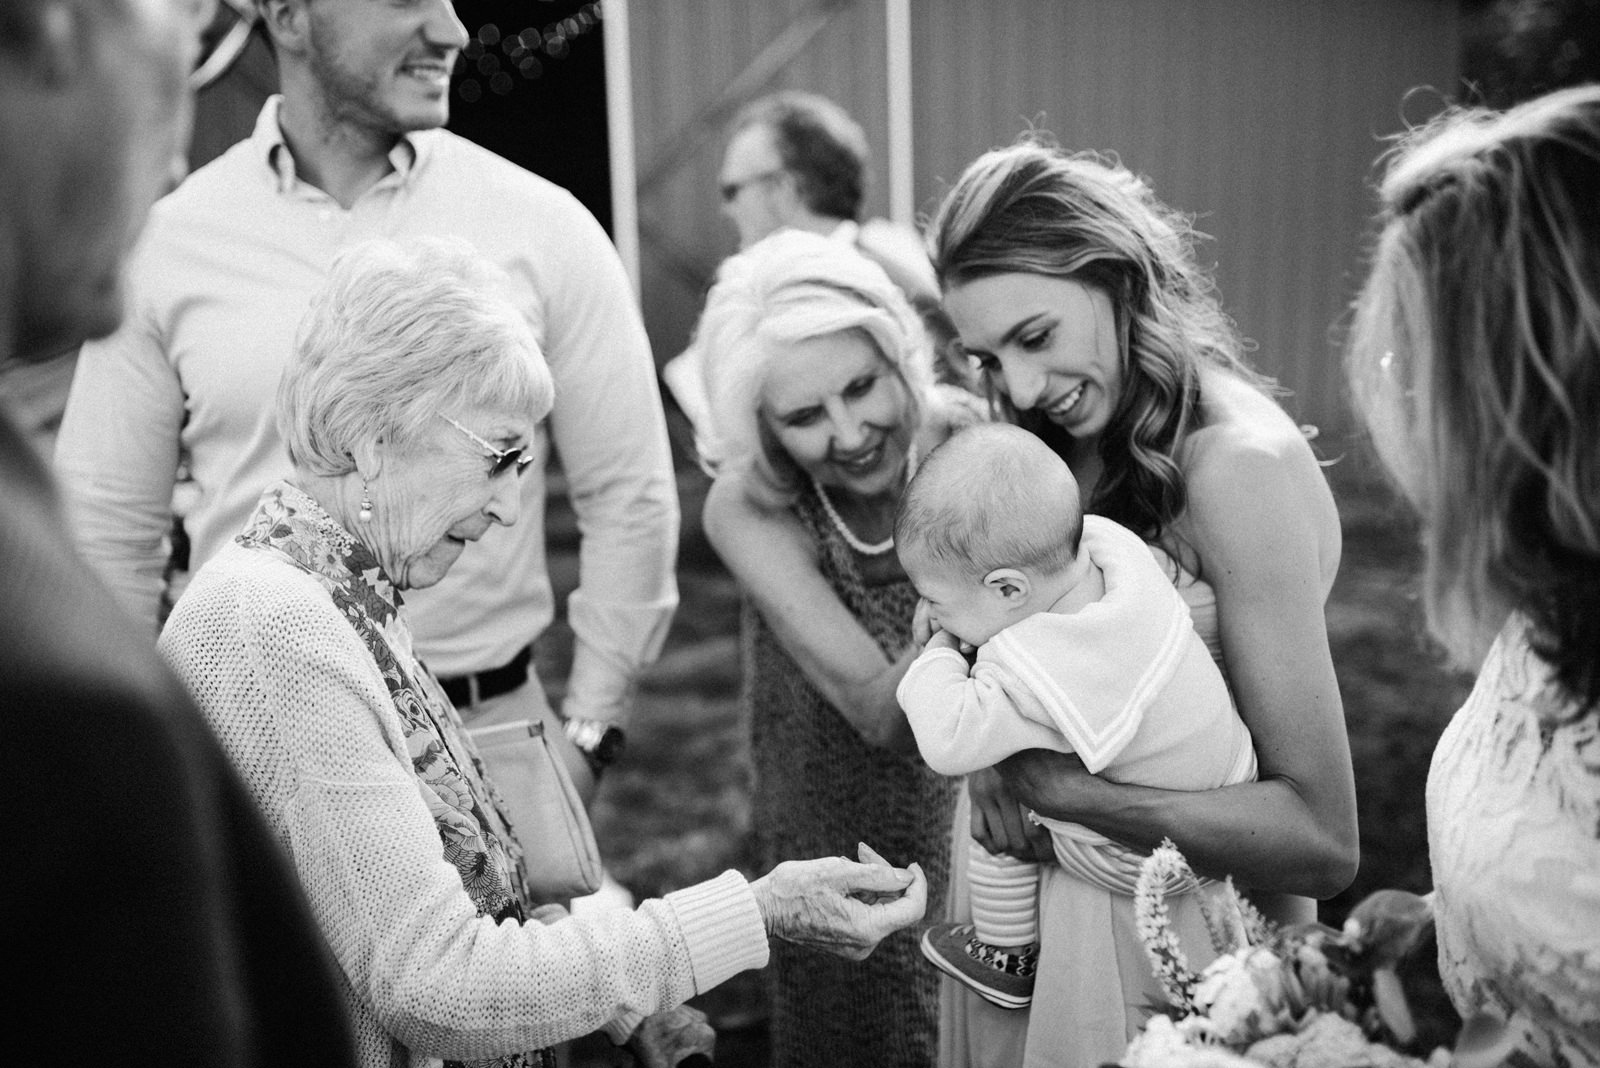 236-best-seattle-documentary-wedding-photographer-image-of-grandmother-and-baby.jpg